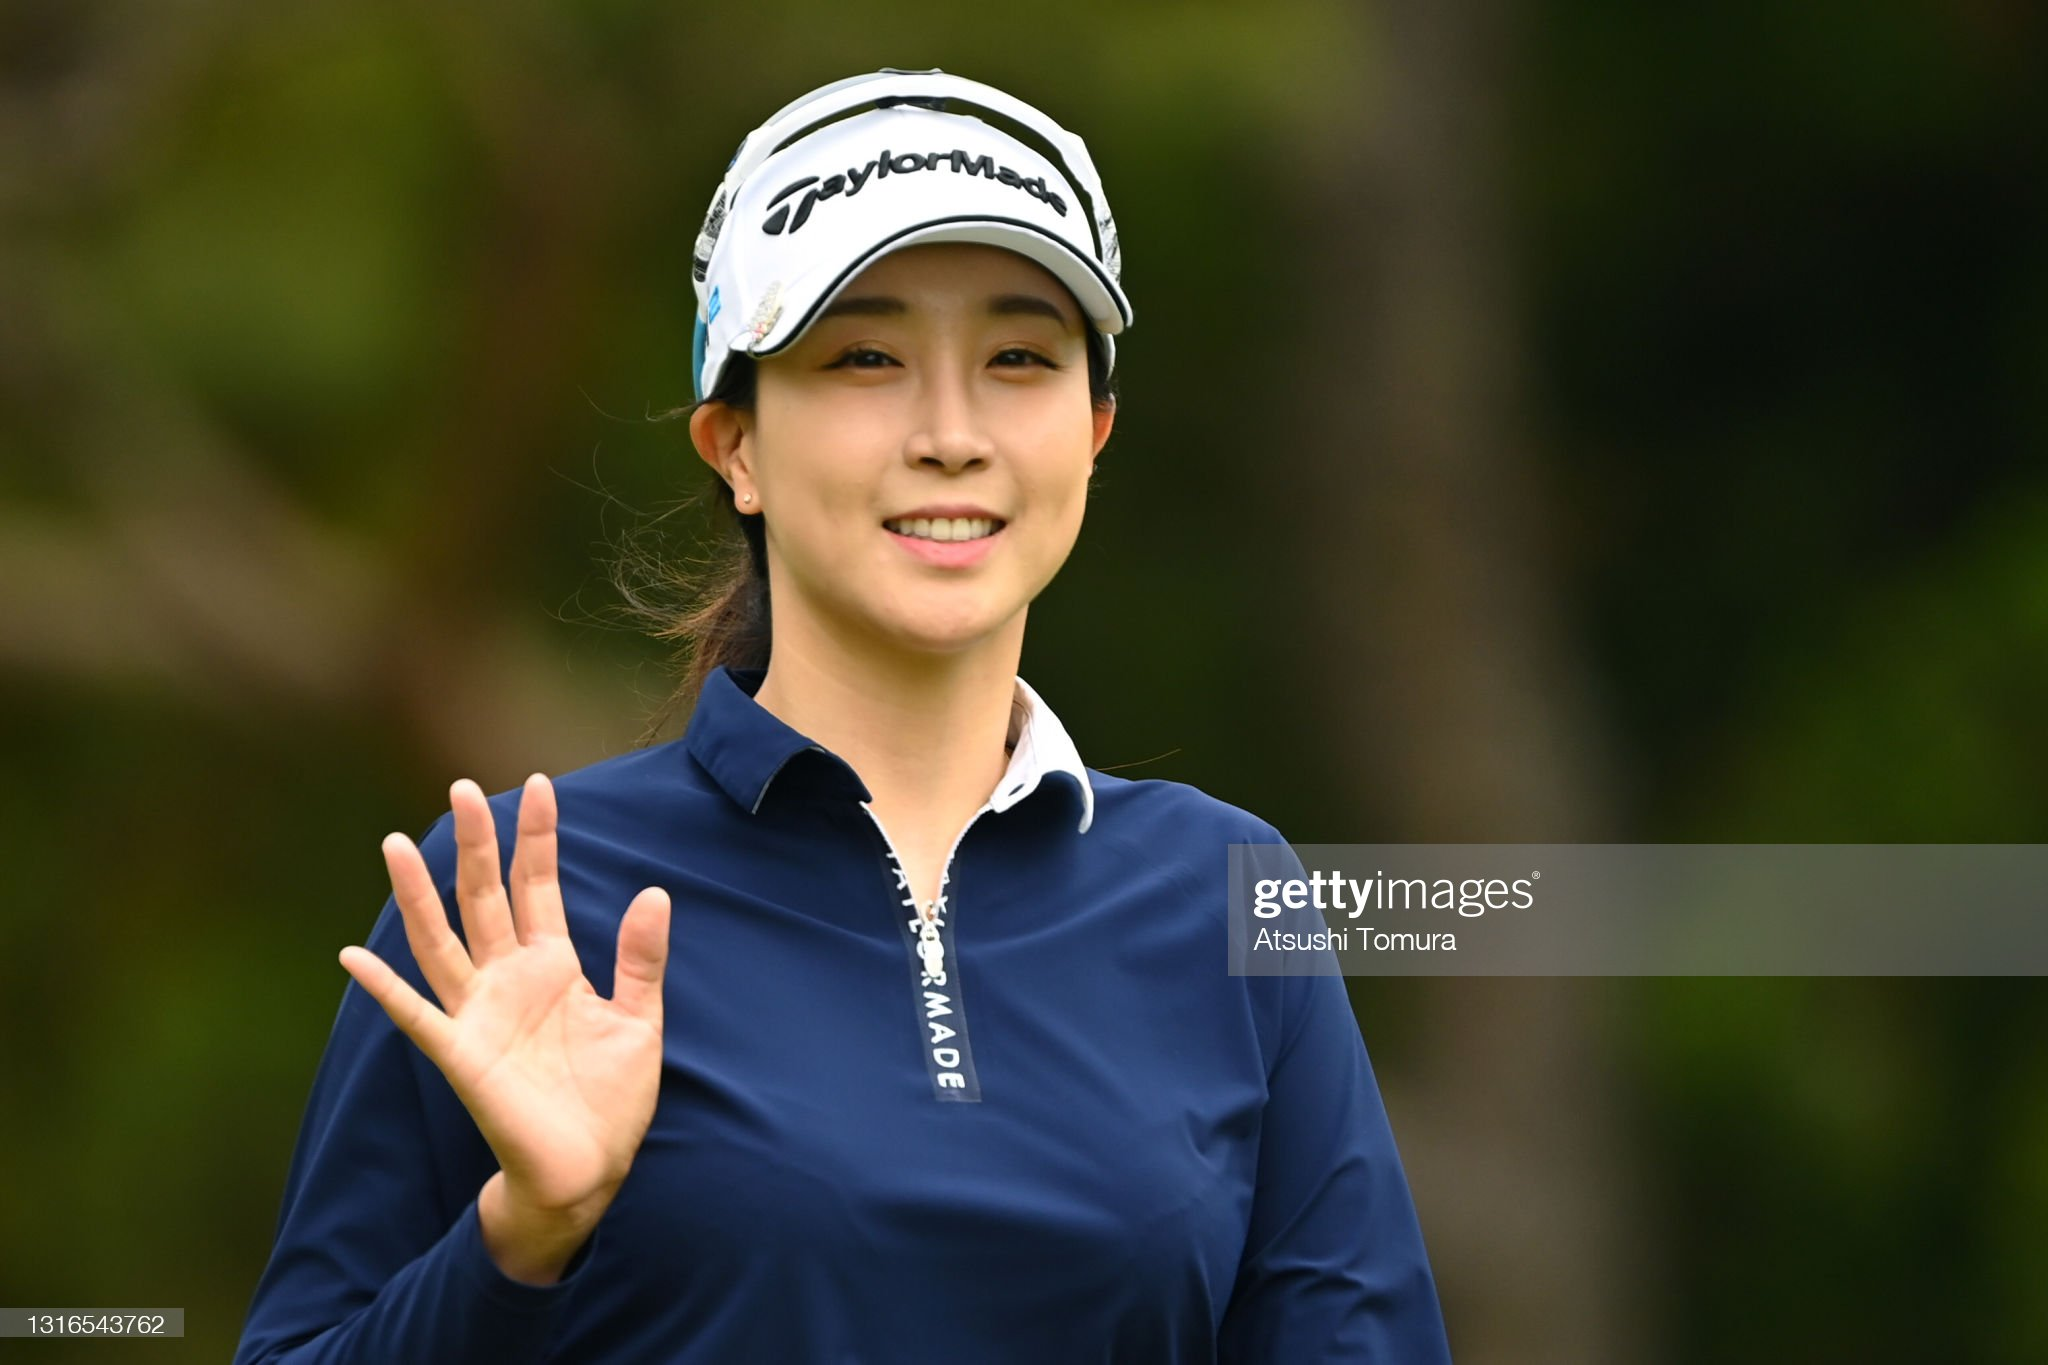 https://media.gettyimages.com/photos/jaeeun-chung-of-south-korea-waves-on-the-4th-hole-during-the-first-picture-id1316543762?s=2048x2048